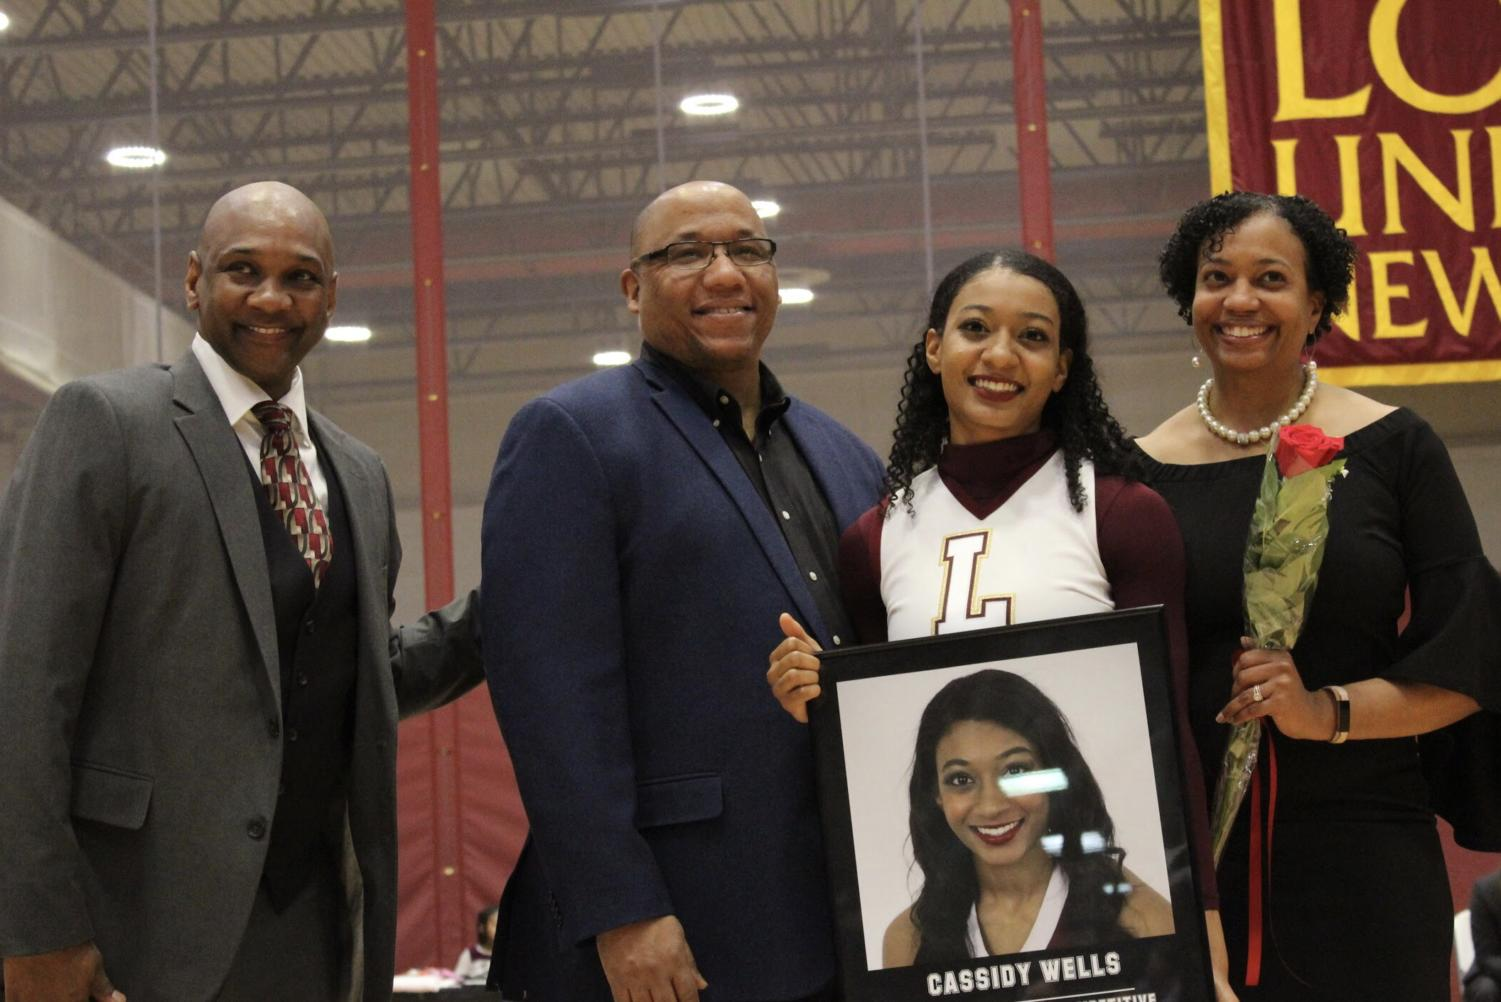 Criminal+justice+senior+Cassidy+Wells+poses+for+a+photo+with+her+family+and+cheer+head+coach+Rickey+Hill.+Photo+credit%3A+Rosha%27E+Gibson